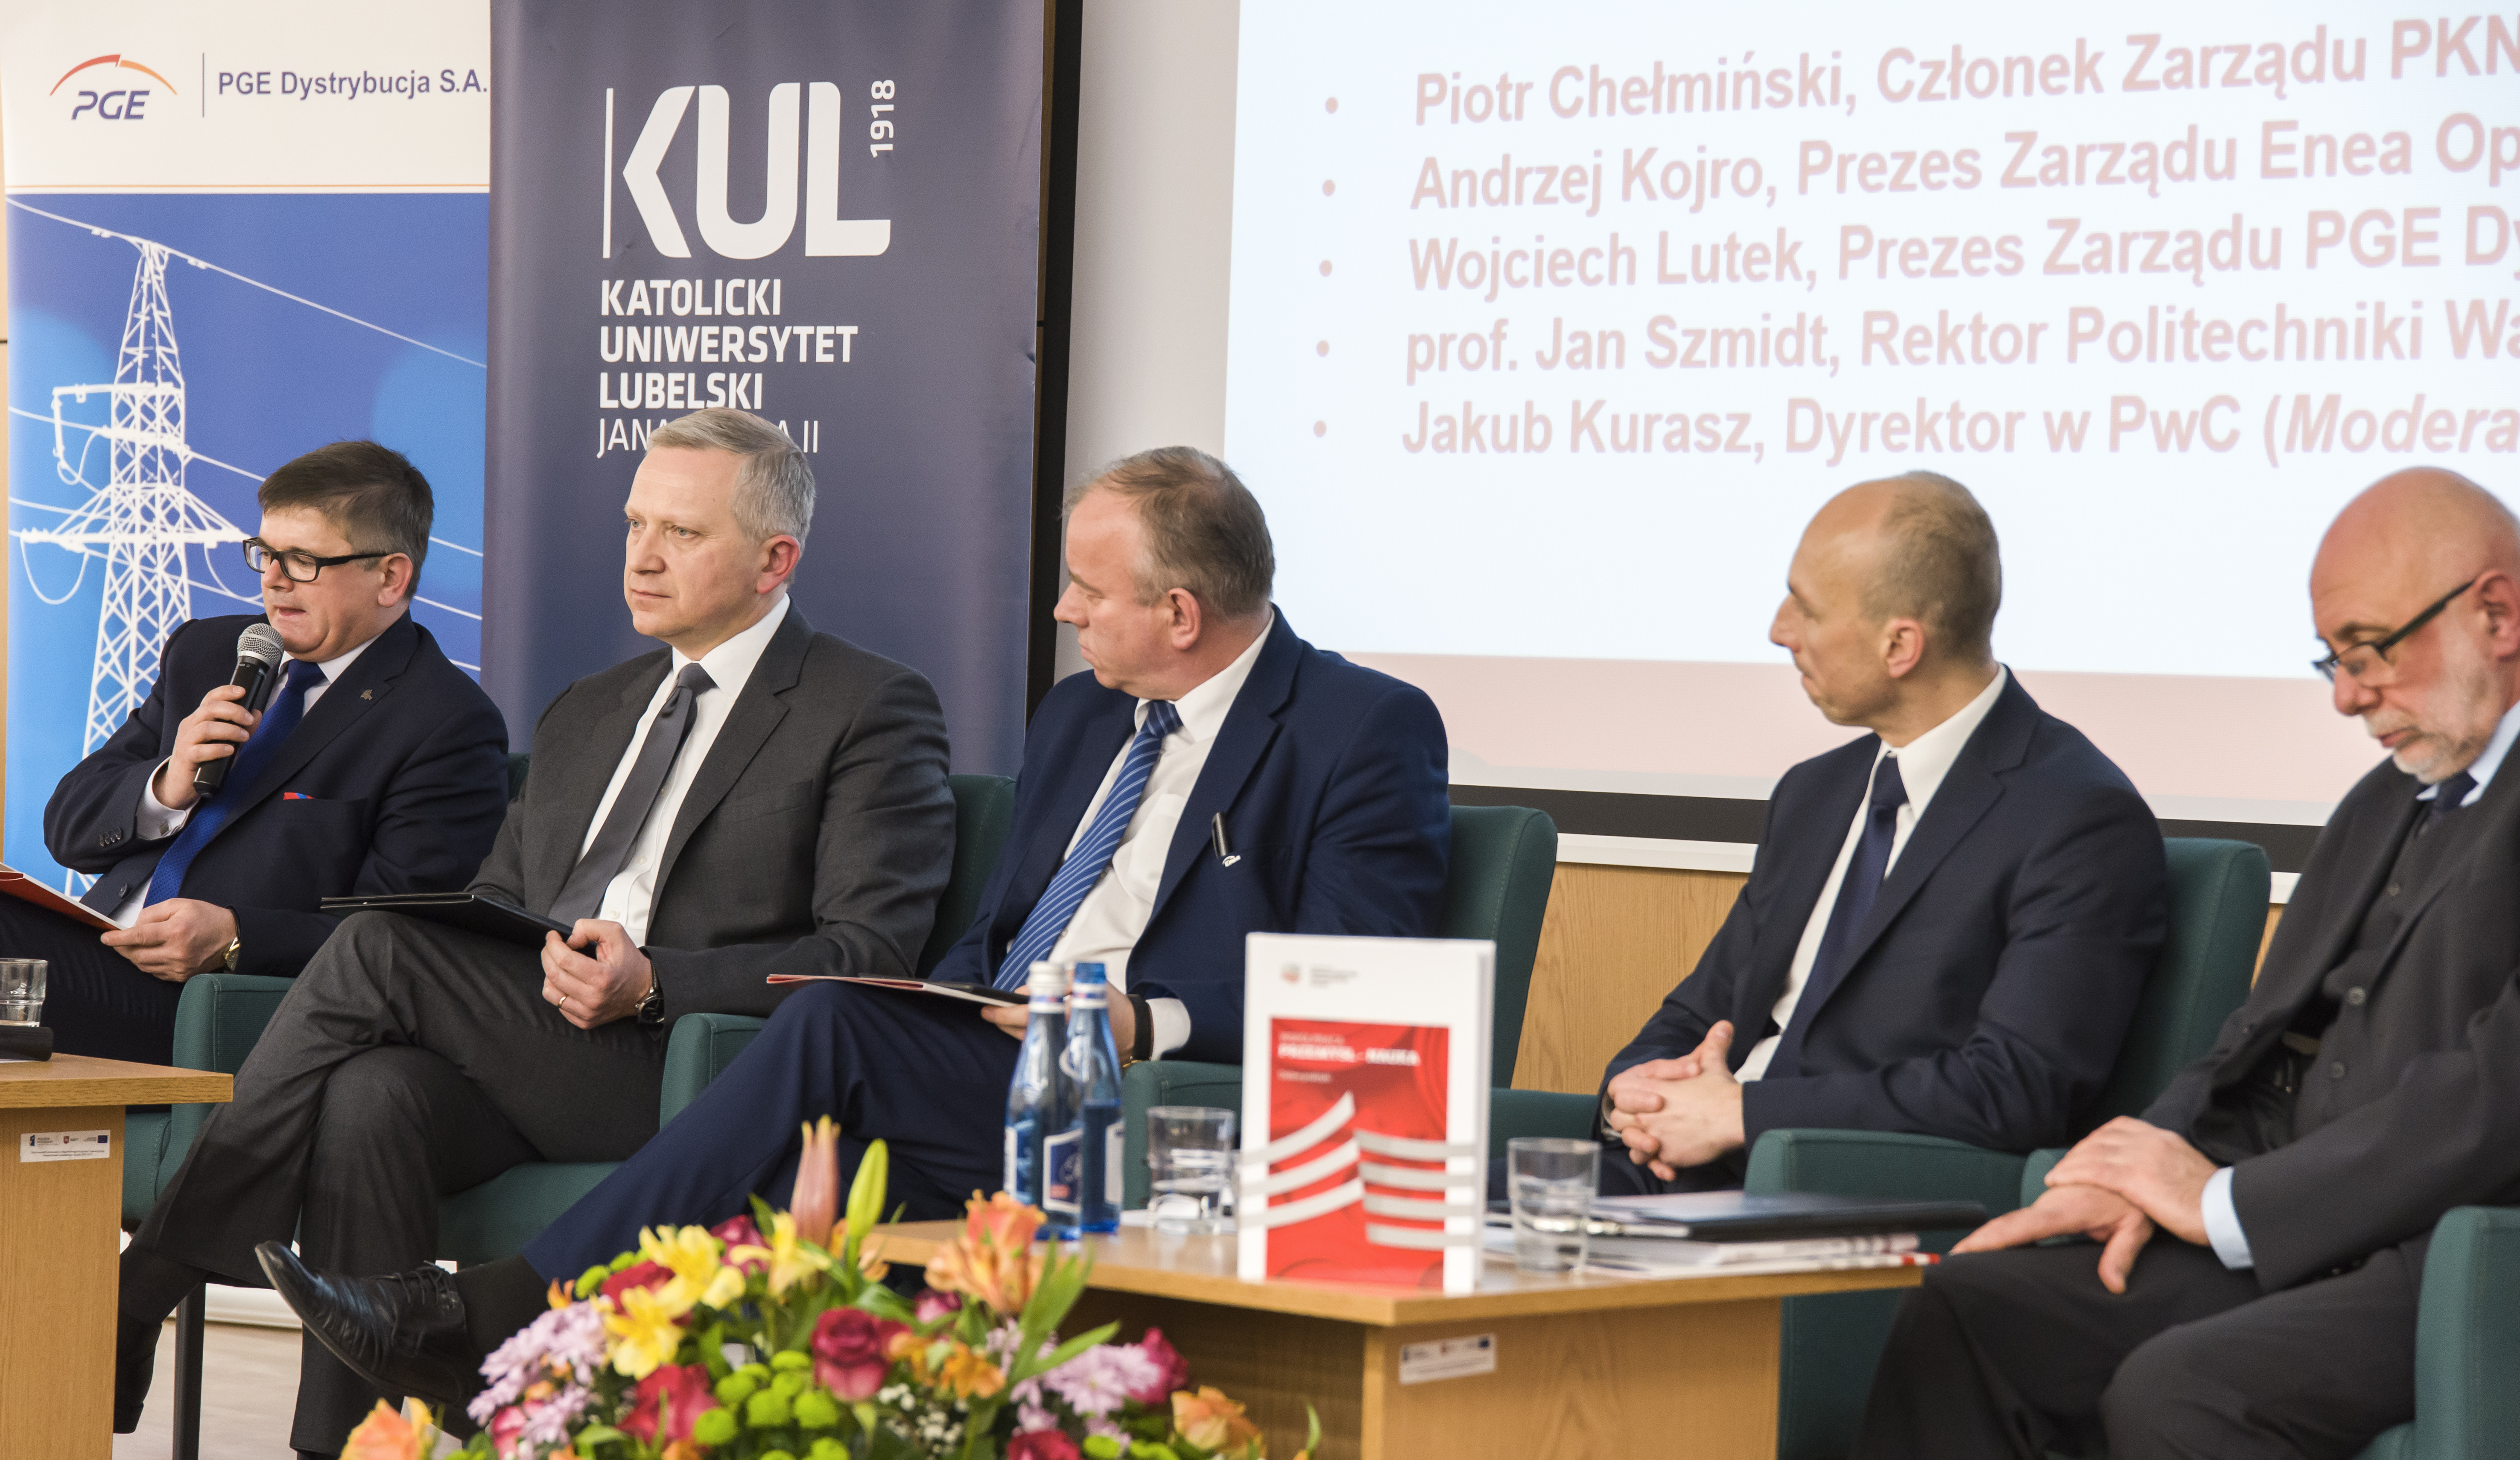 Industry and science looking to forge closer ties